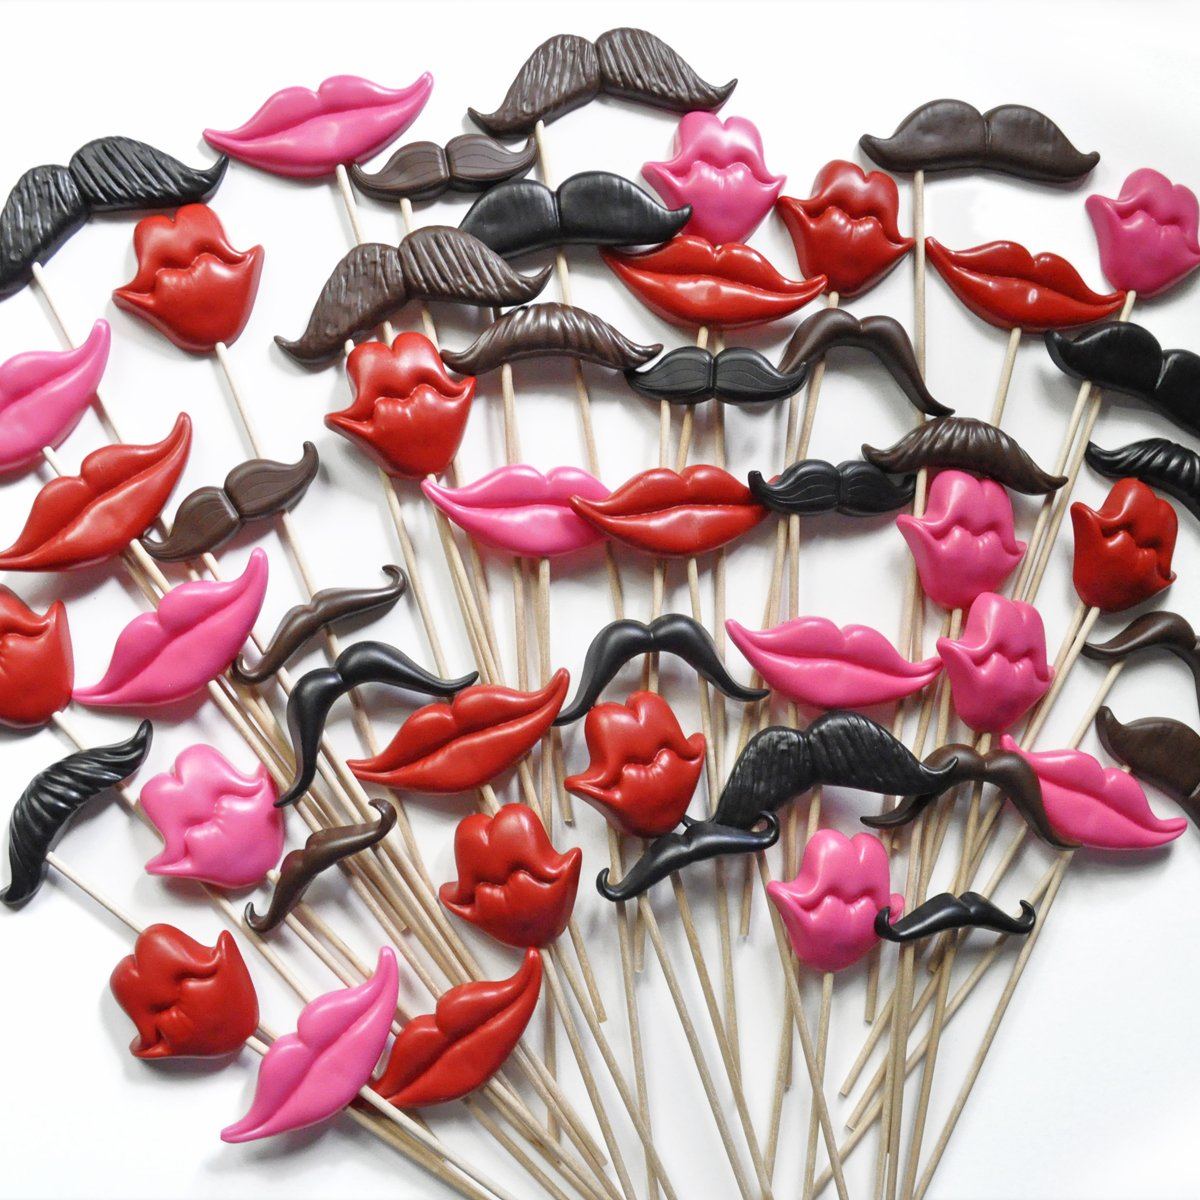 Photo Booth Prop Kit, Set of 100 Mustache and Smile Props on Sticks by Whisker Works